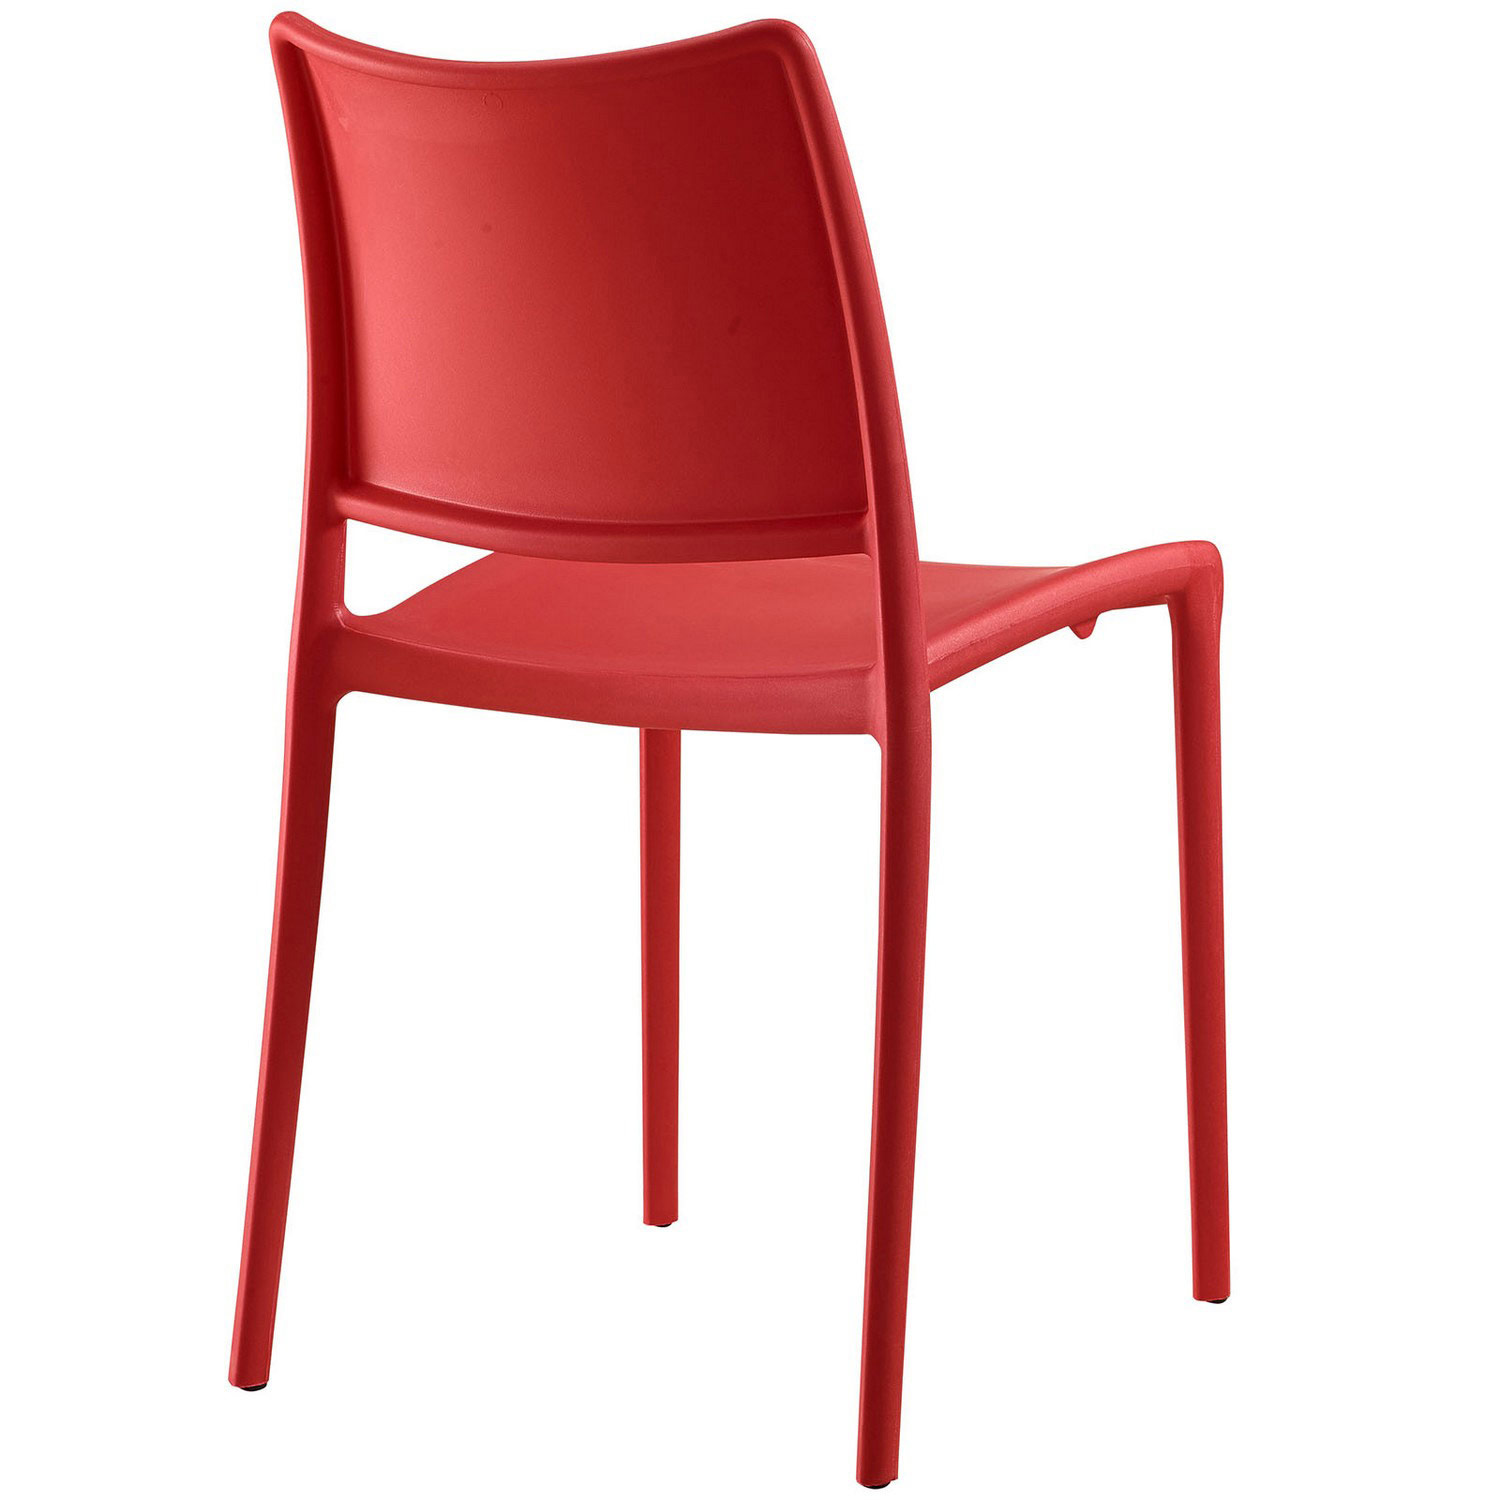 Modway Hipster Dining Side Chair - Red